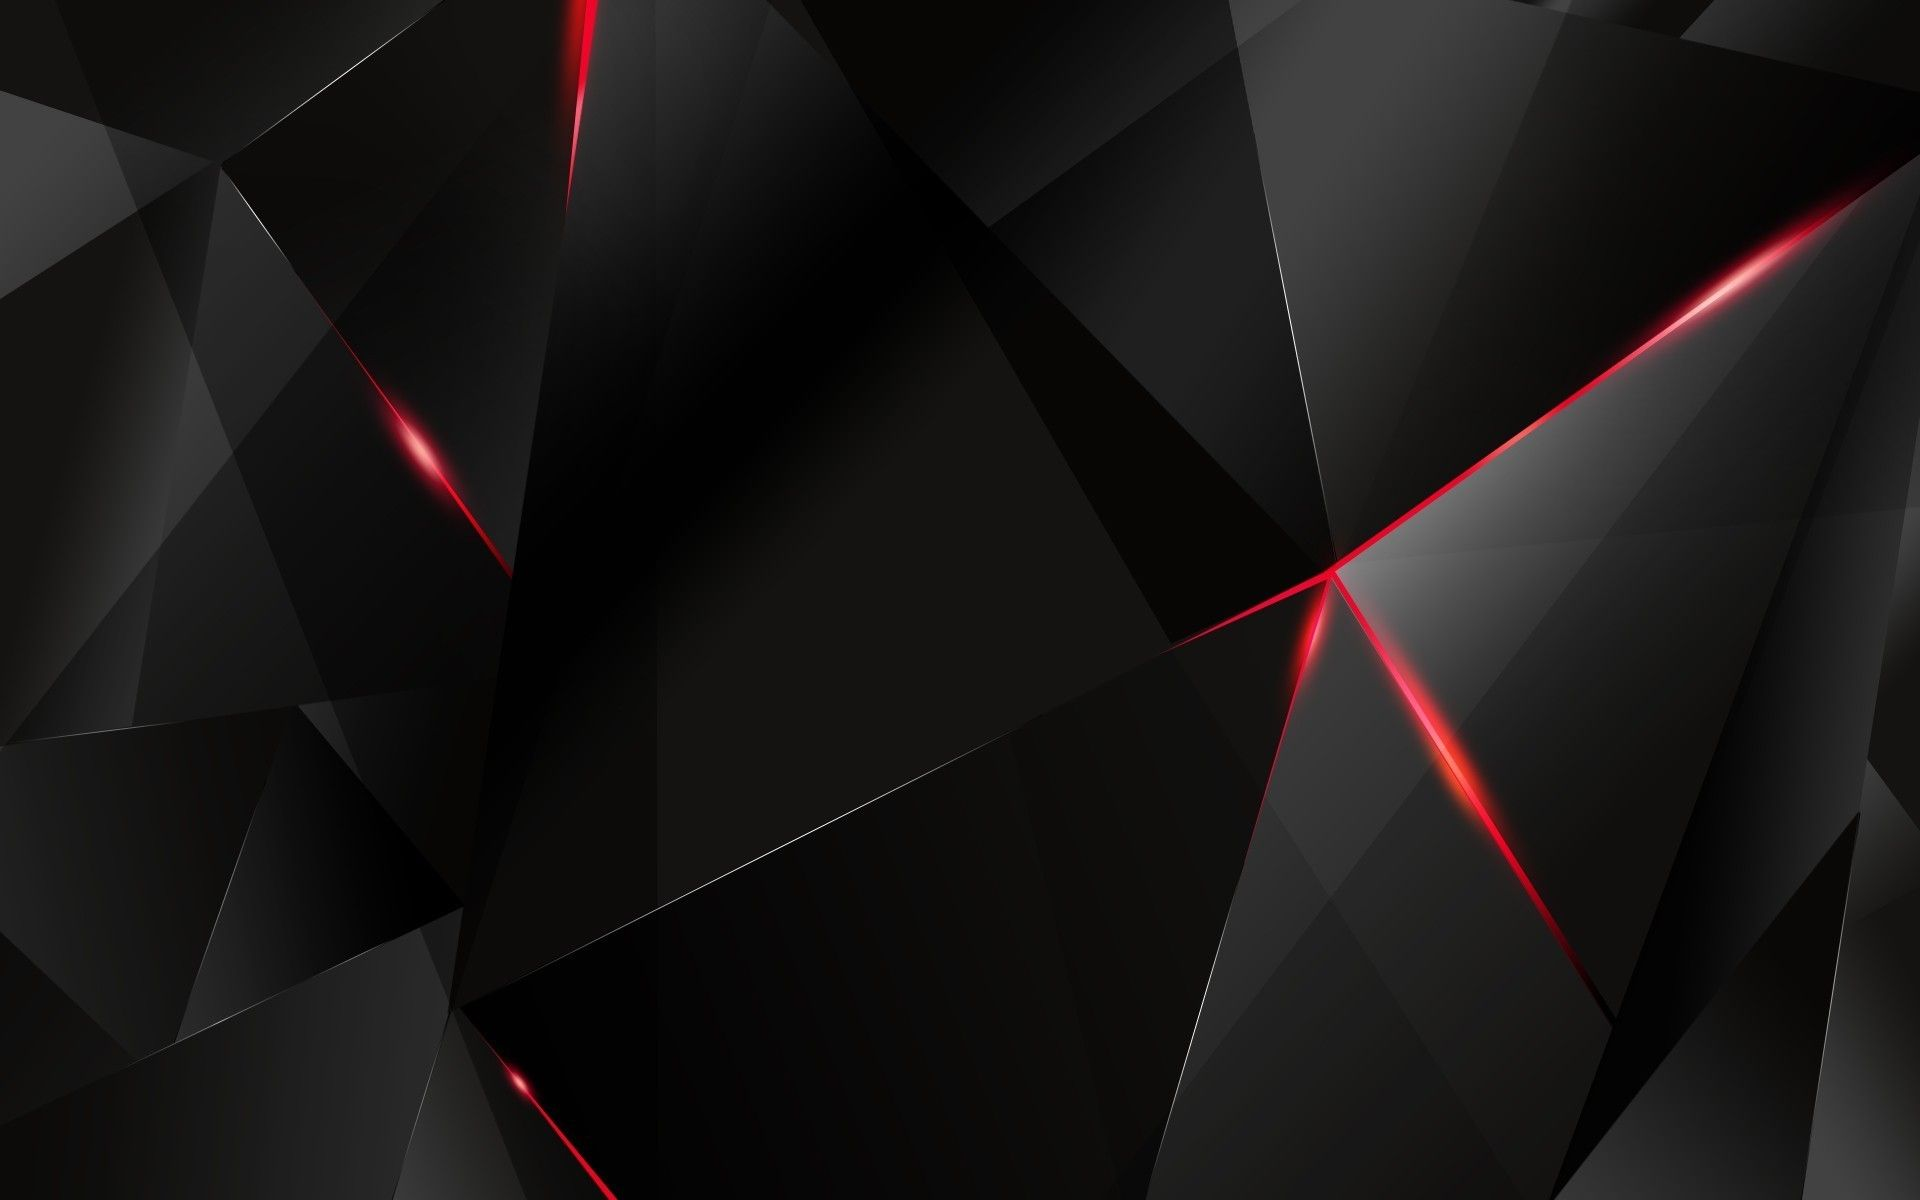 Black And Red Wallpapers HD 1920x1200